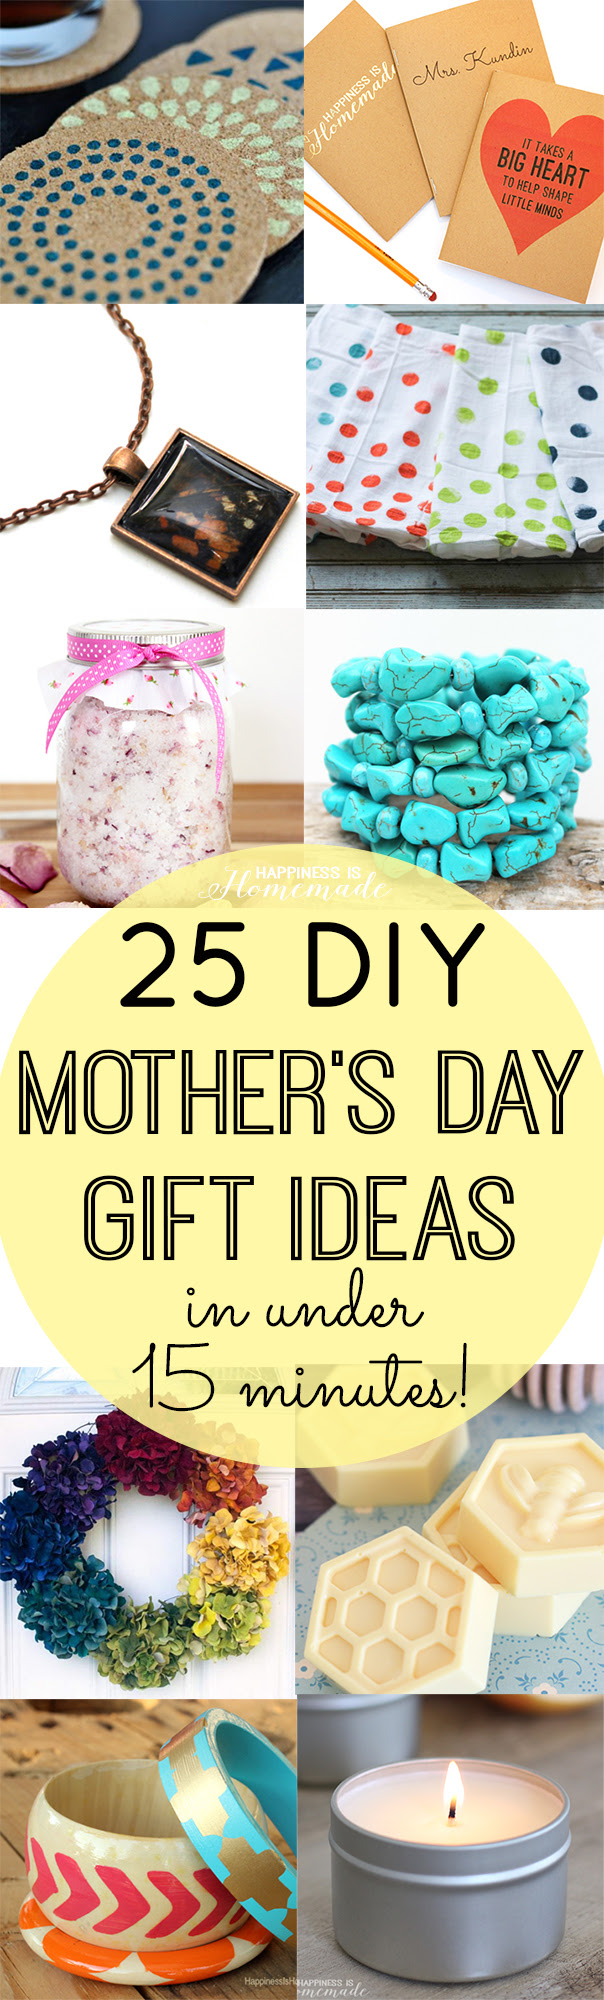 Gifts for Mom Under $20 Mason Jar Themed!  The Country Chic Cottage